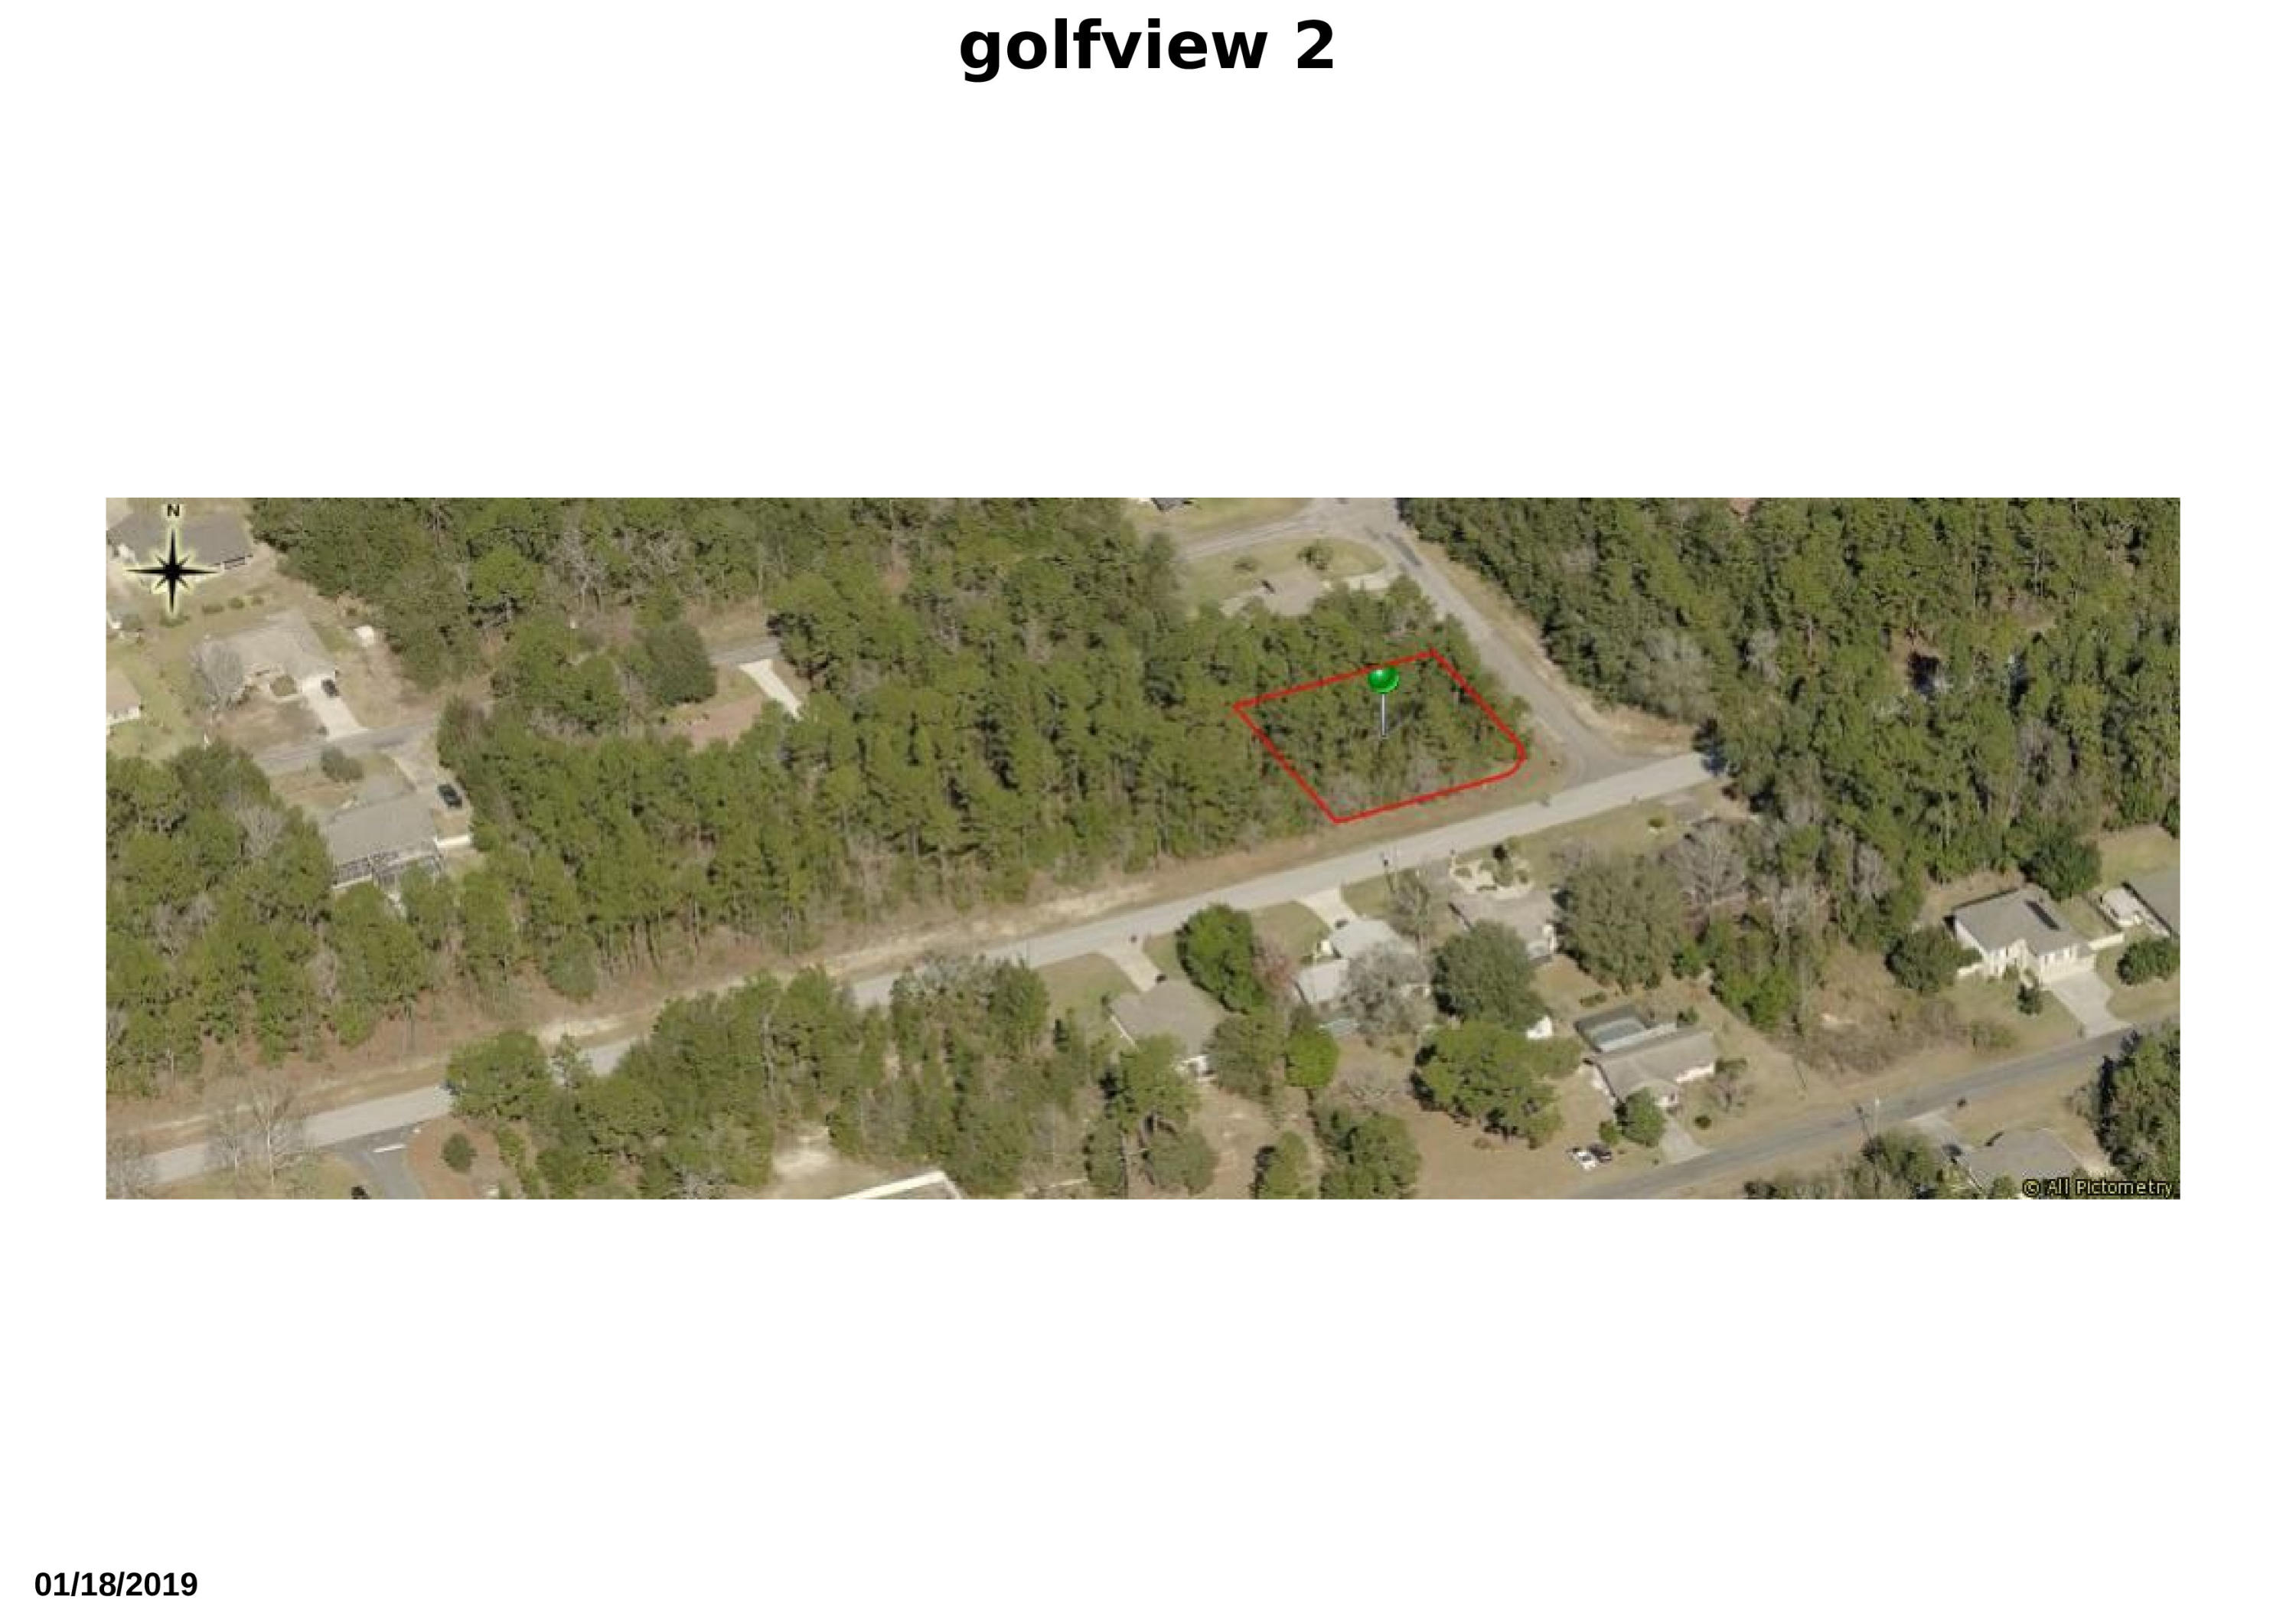 golfview 2